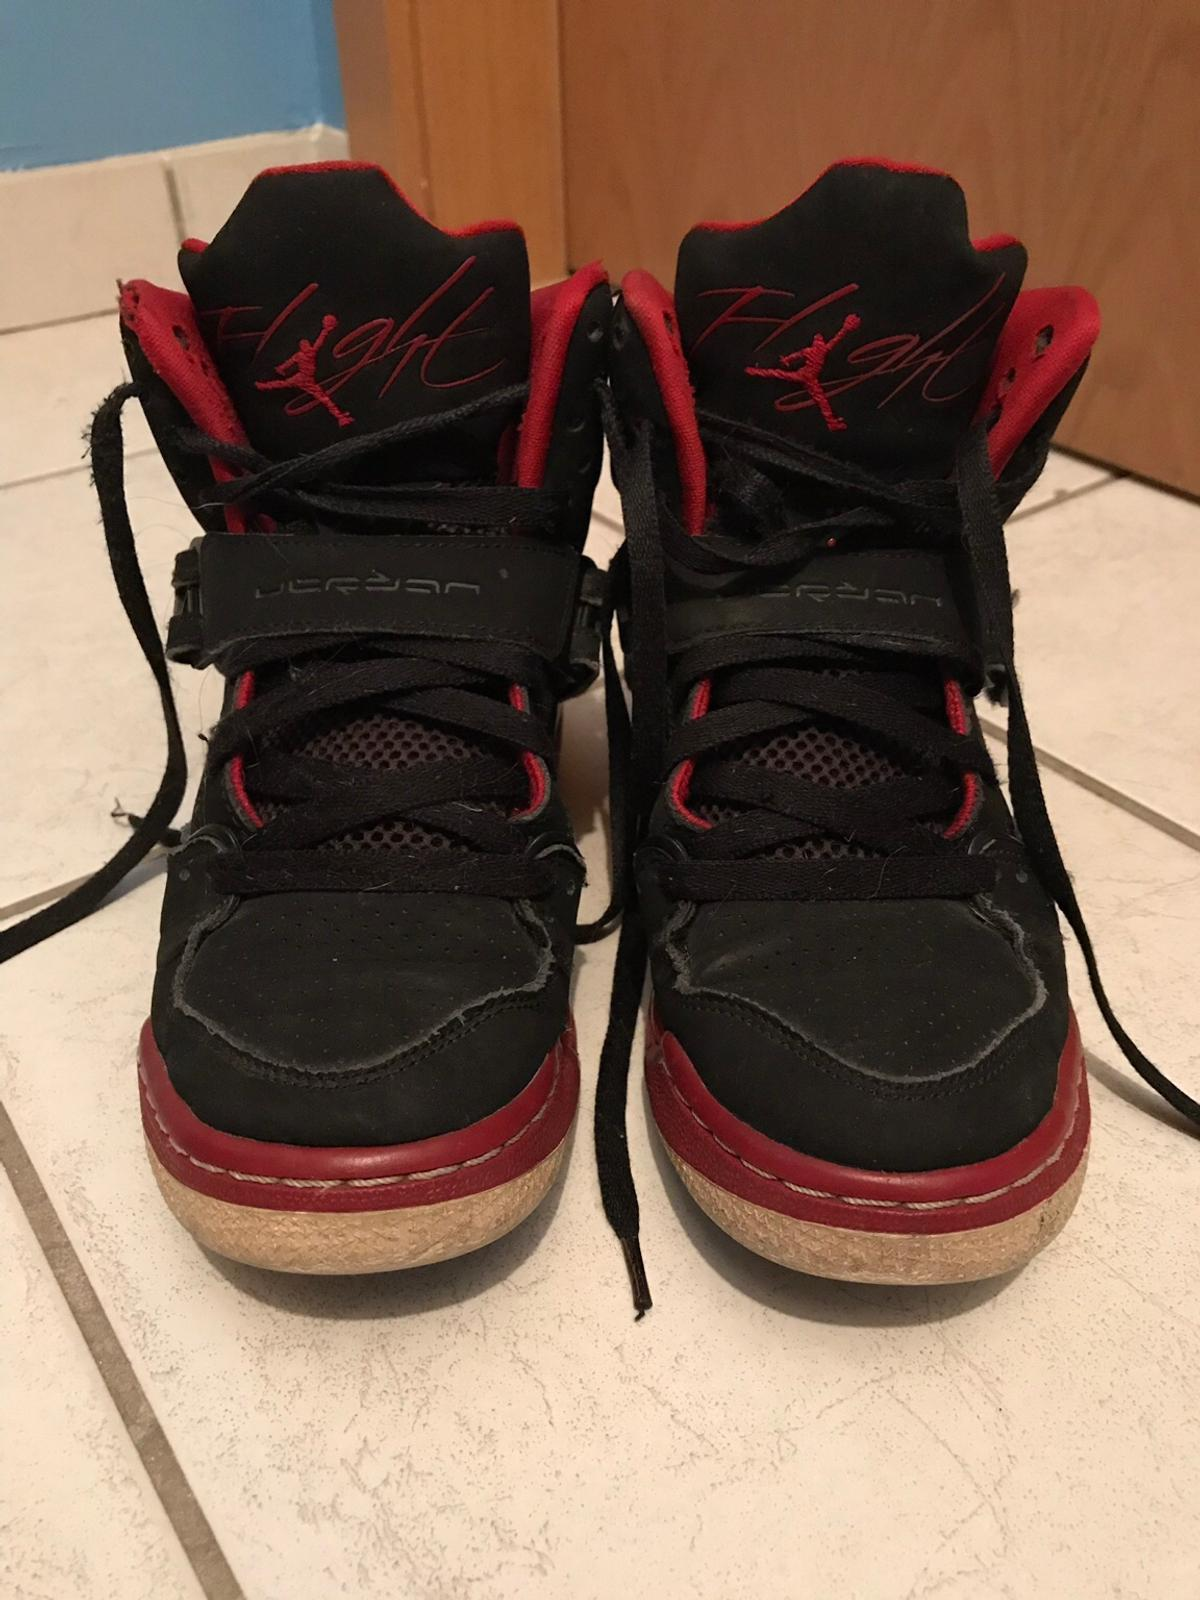 Chaussures Jordan taille 38